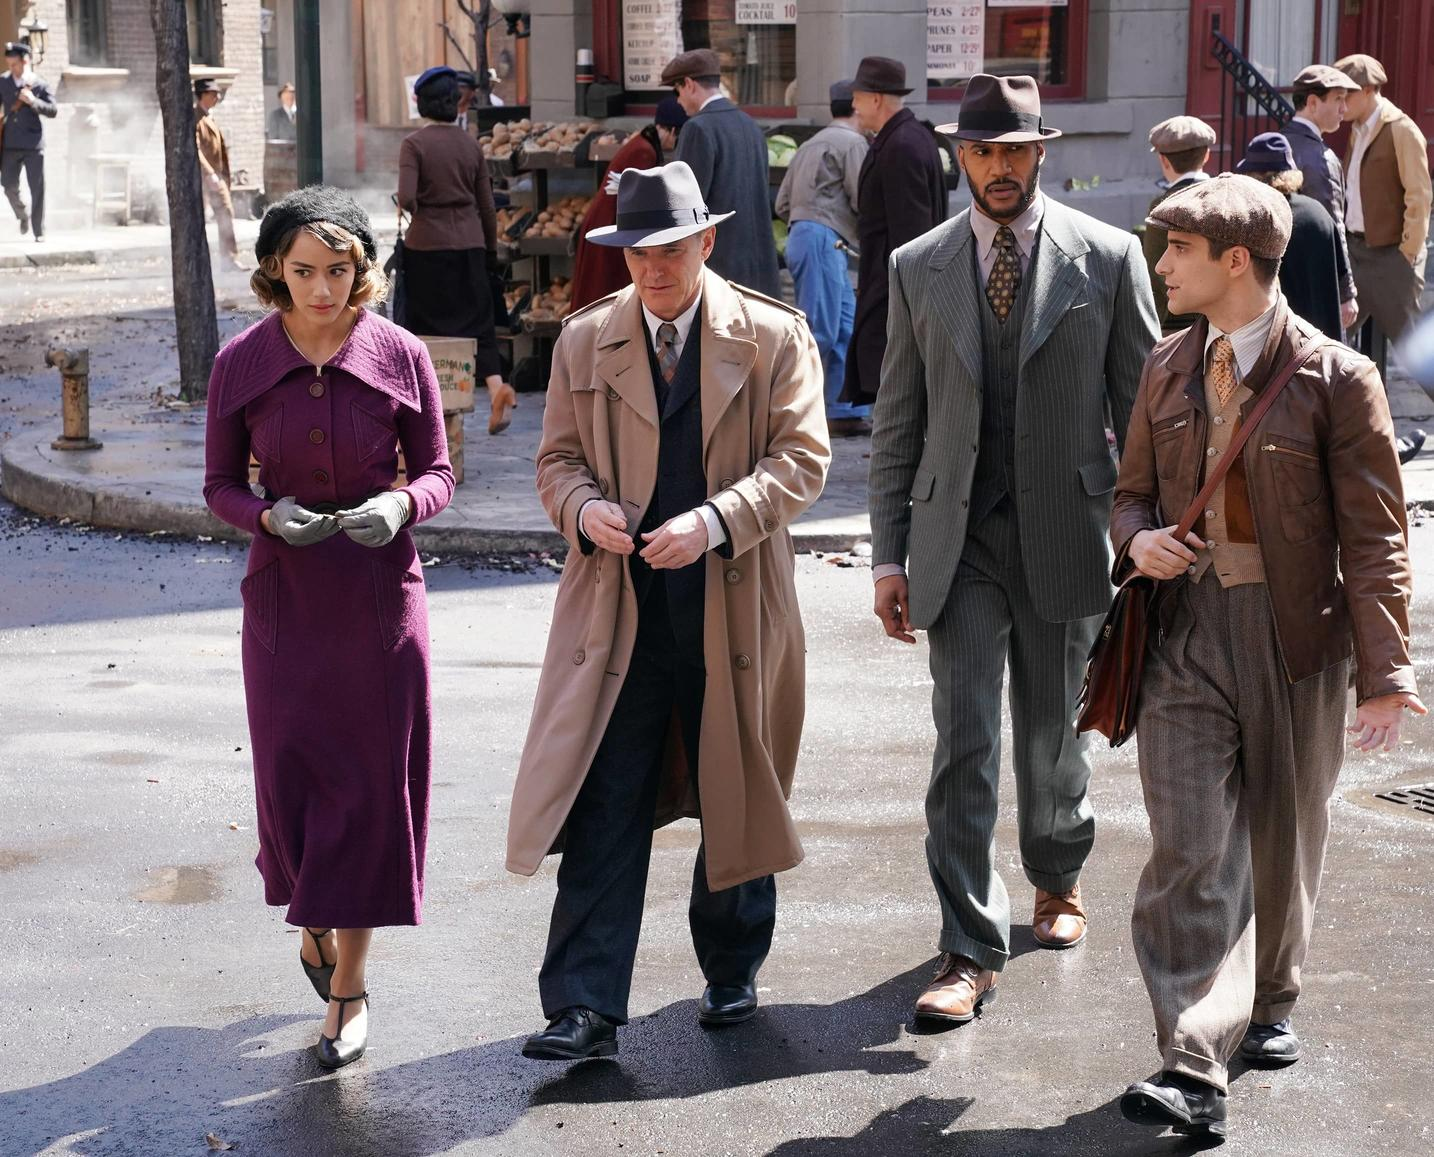 Marvel's Agents of S.H.I.E.L.D.: Daisy, Coulson, Mack, and Deke blend in to the 1930s New York.